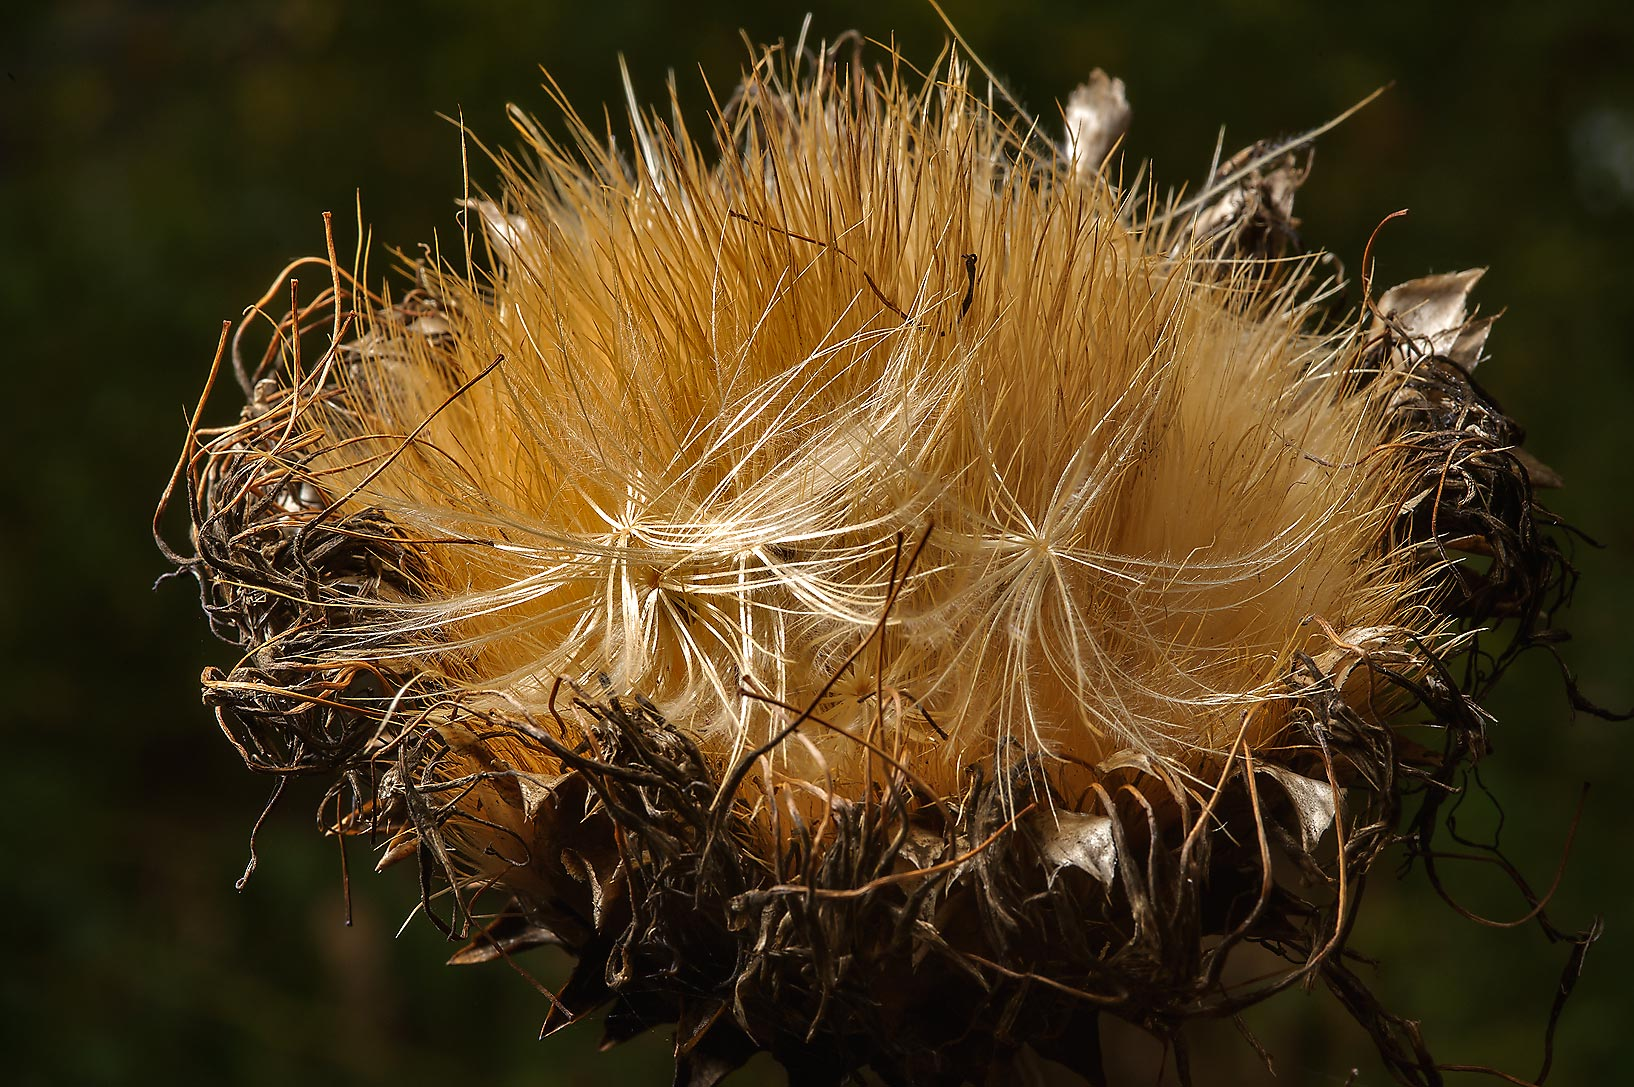 Artichoke seed head (Cynara cardunculus) in Antique Rose Emporium. Independence, Texas